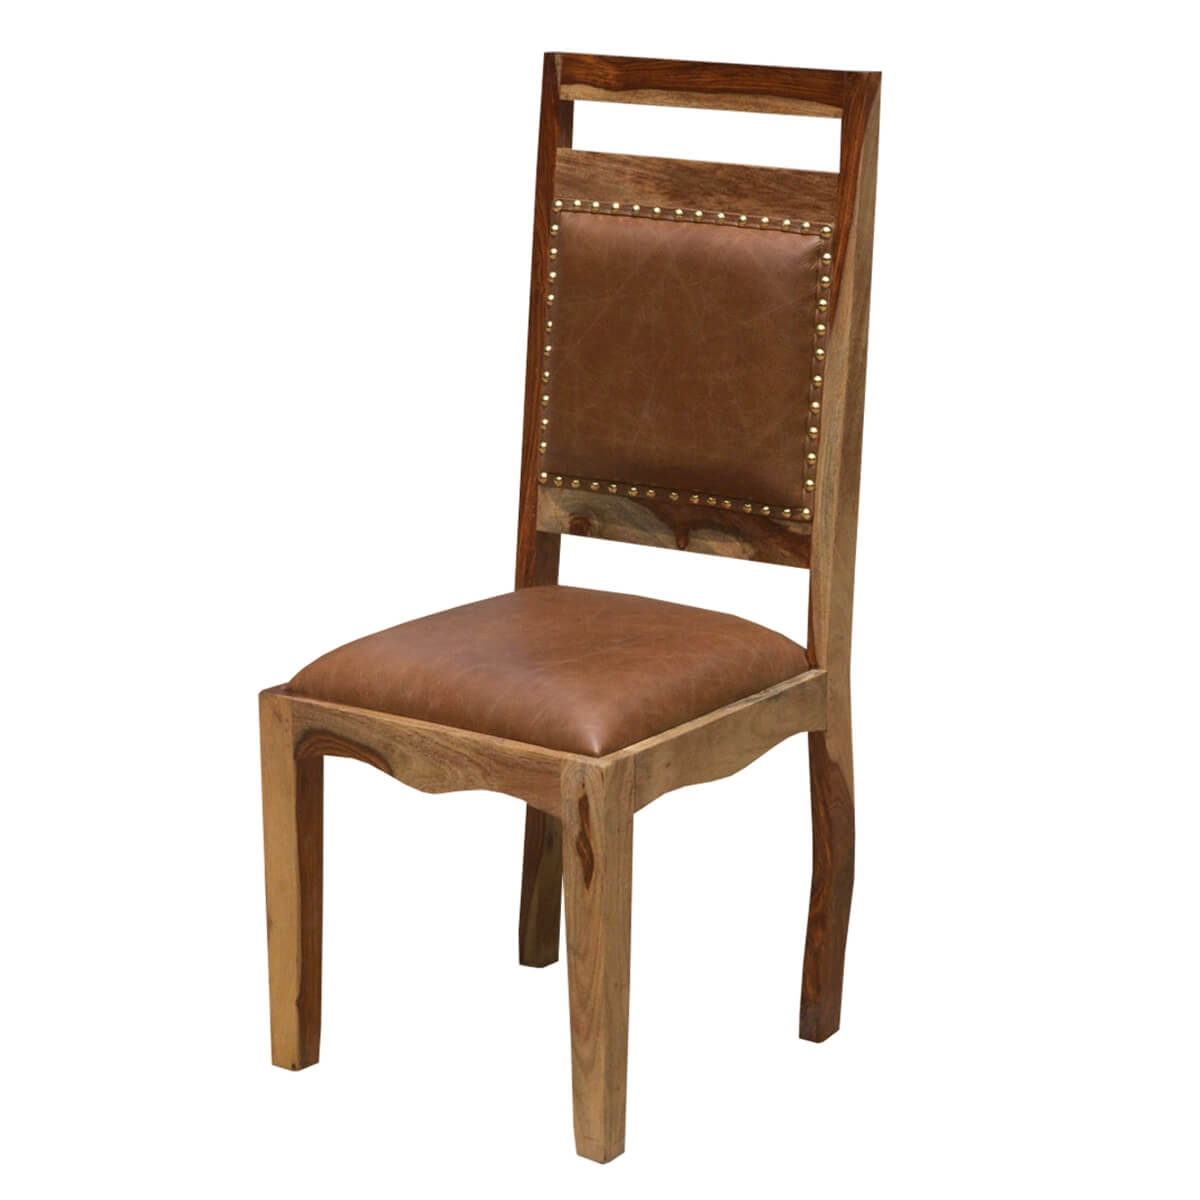 Transitional Rustic Solid Wood Leather Dining Chair